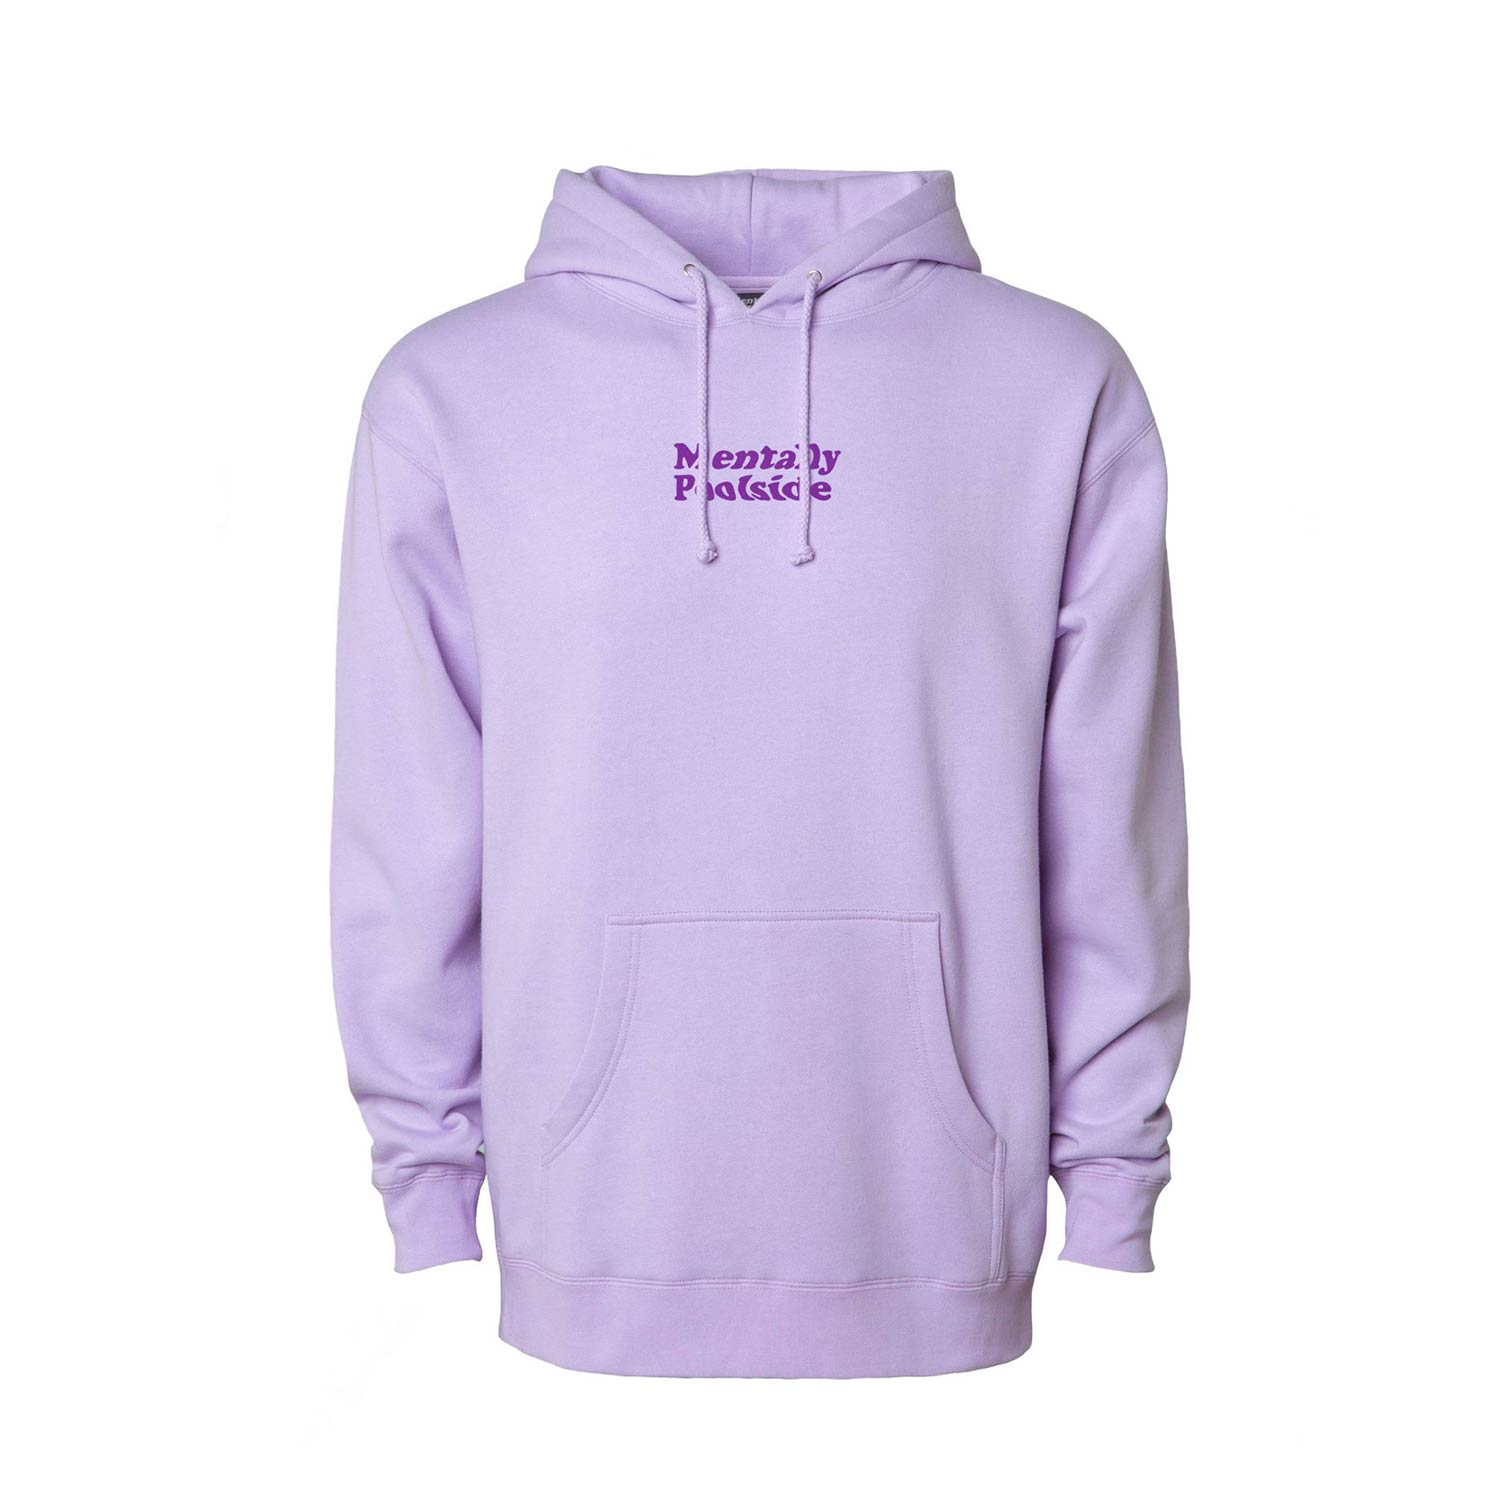 Mentally Poolside OG Heavy Weight Pullover Hoodie-Pullover Hoodie-Independent trading-Lavander Blue-S-Mentally Poolside